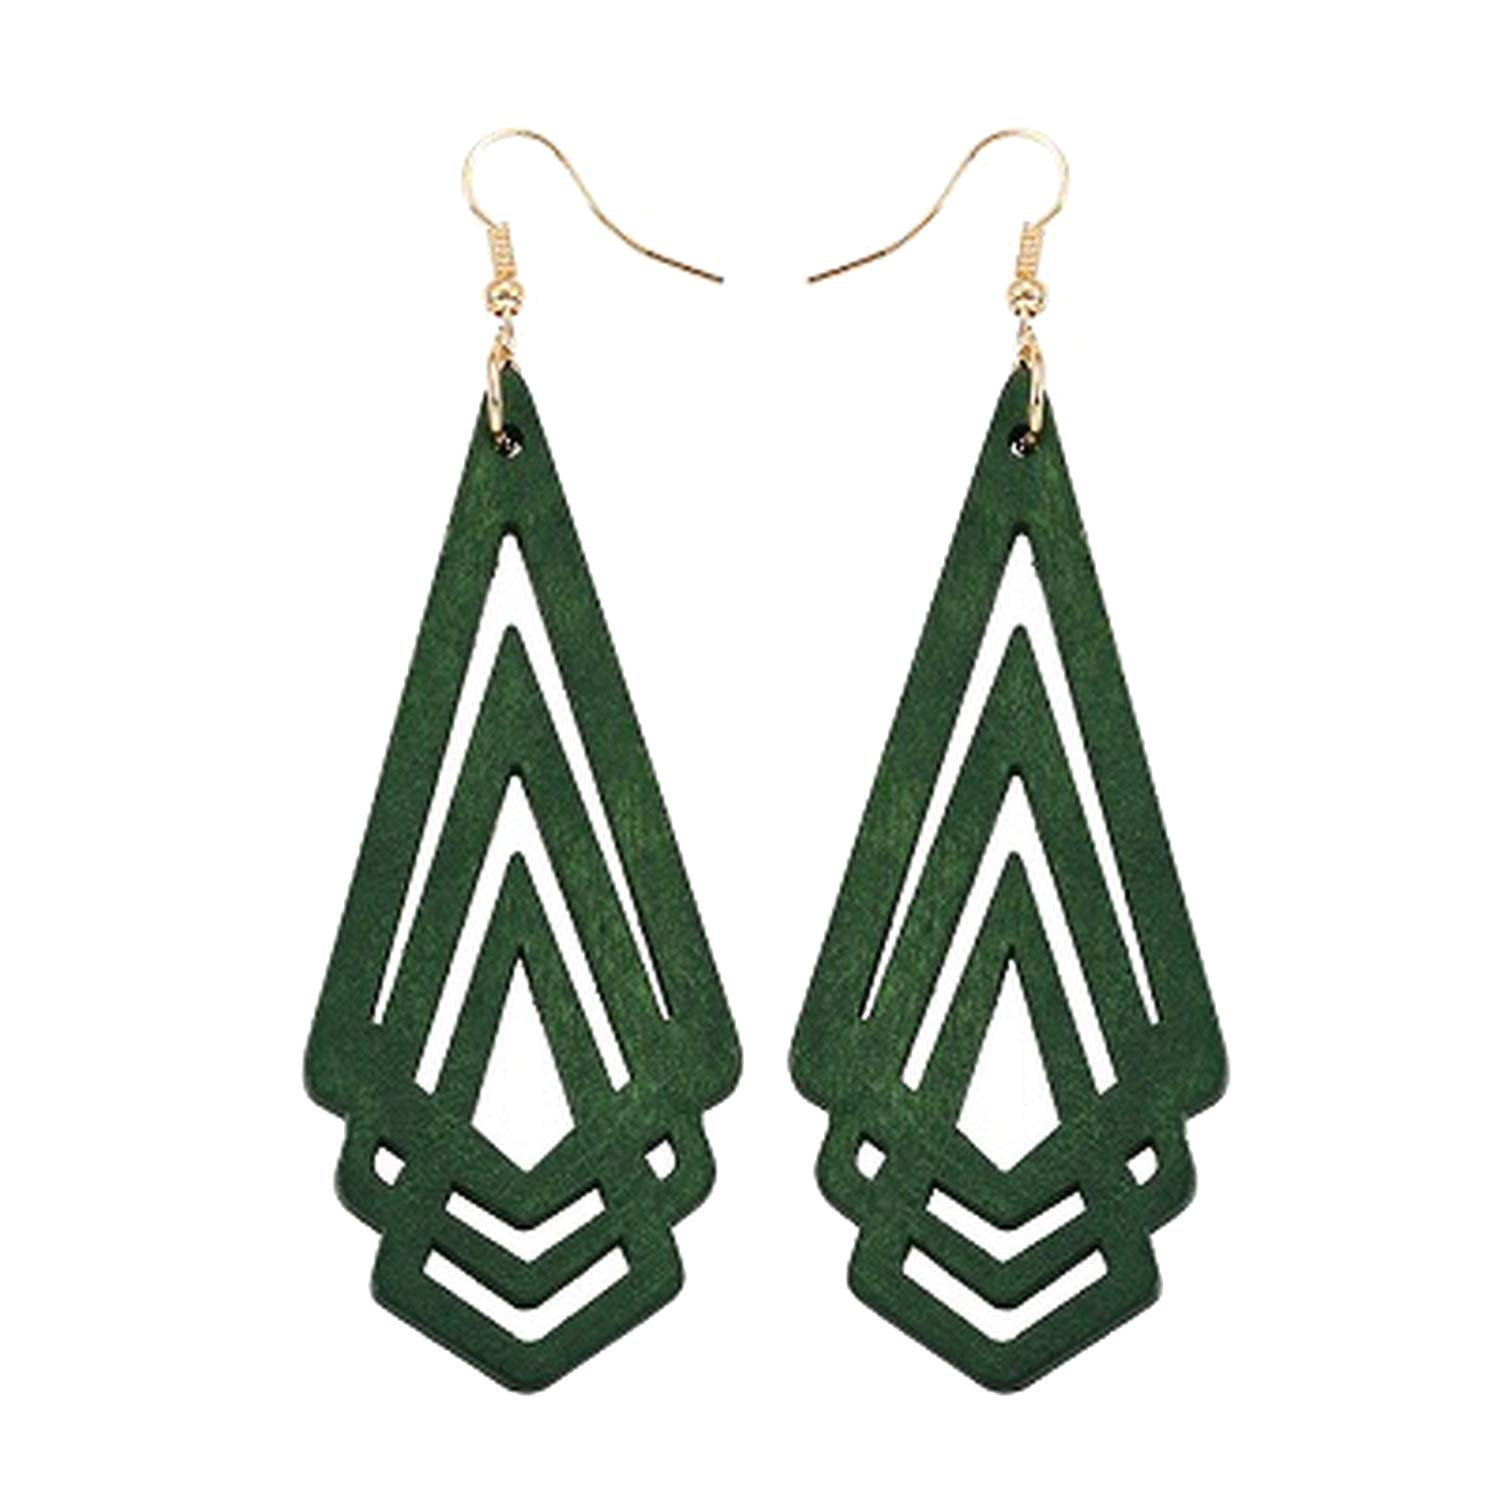 Natural Wooden Earrings Hollow Triangle Personality Simple Style Fashion Jewelry For Girls Prom Party